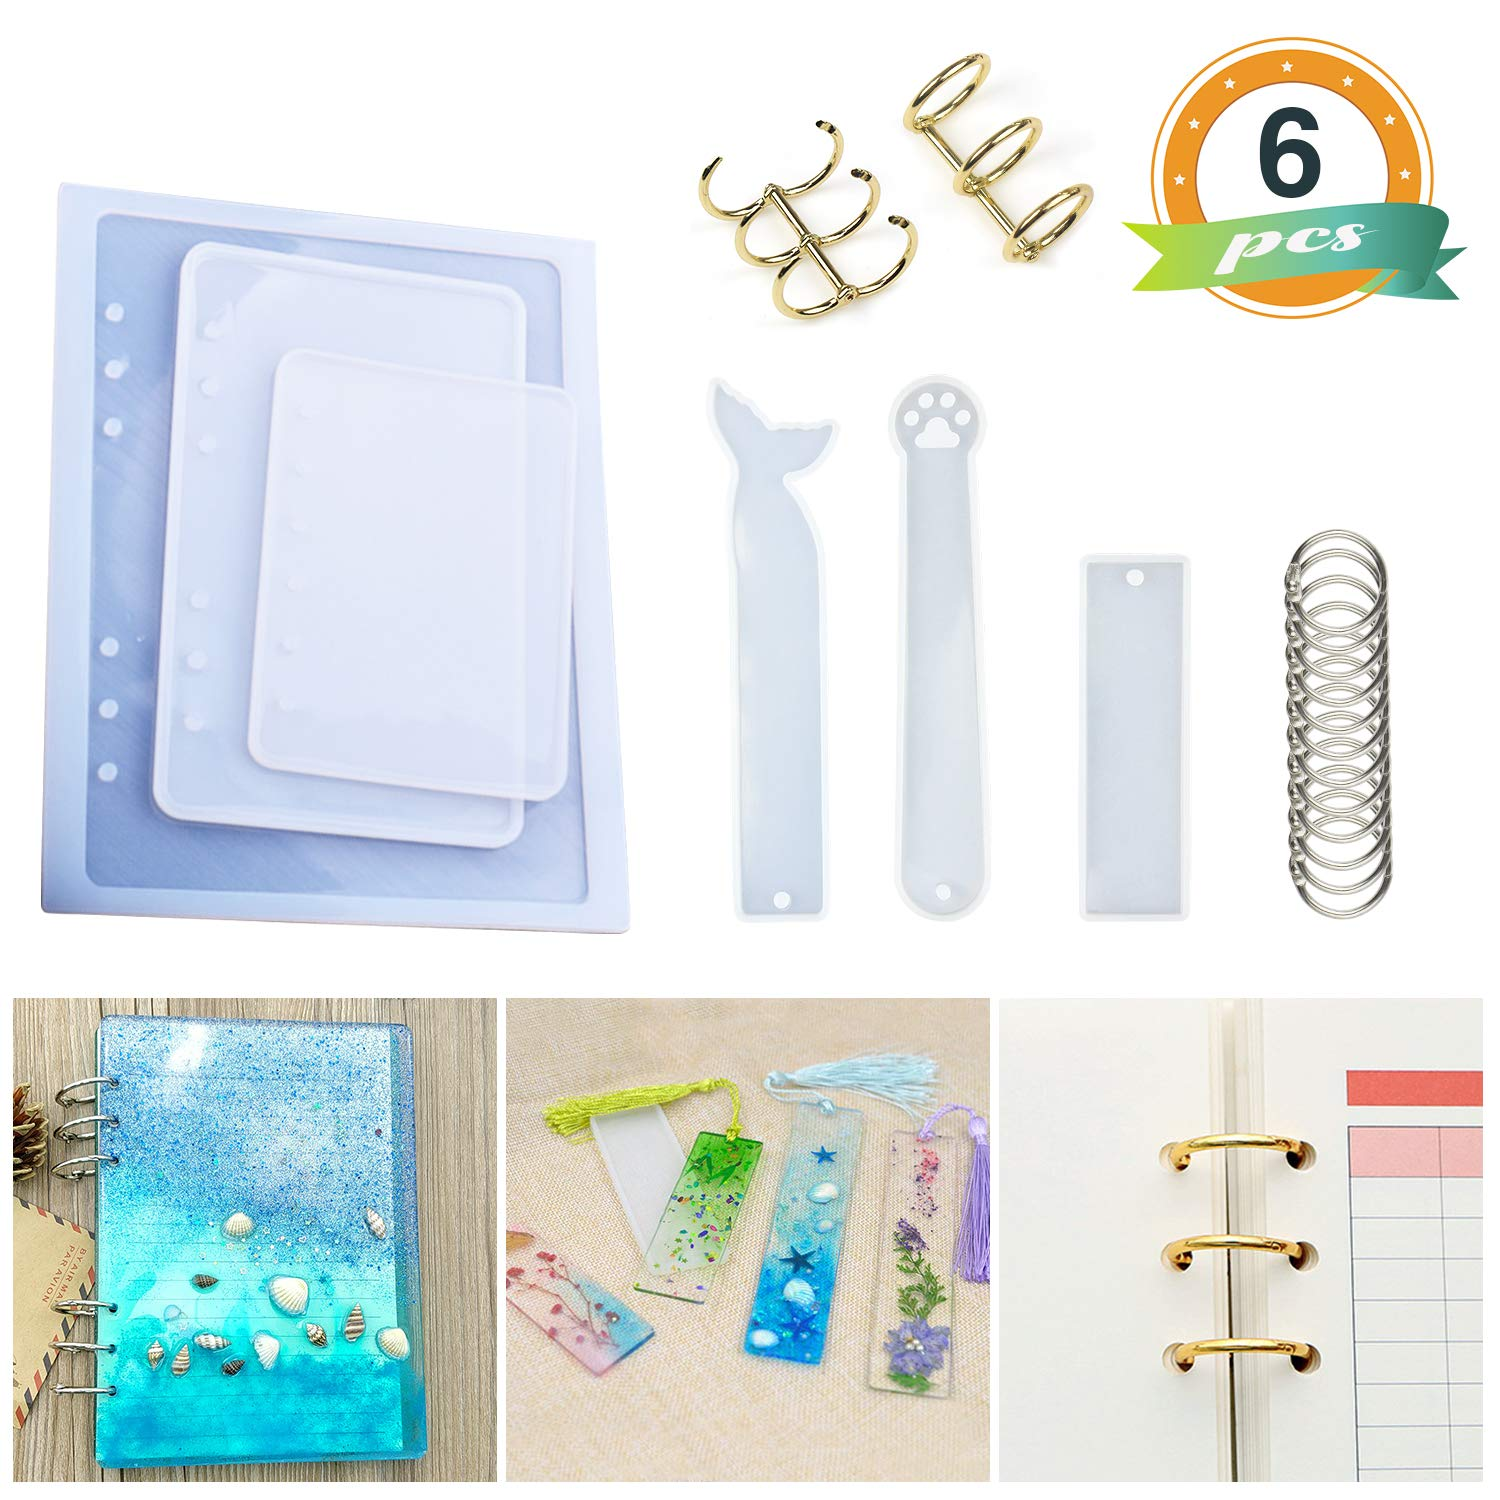 Resin Casting Molds for Notebook Cover A5 A6 A7, Silicone Bookmark Resin Mold 6PCS, Silicone Notebook Cover Clear Casting Epoxy Resin Molds with 14PCS Book Rings for Epoxy Resin Jewelry DIY Fans by LET'S RESIN